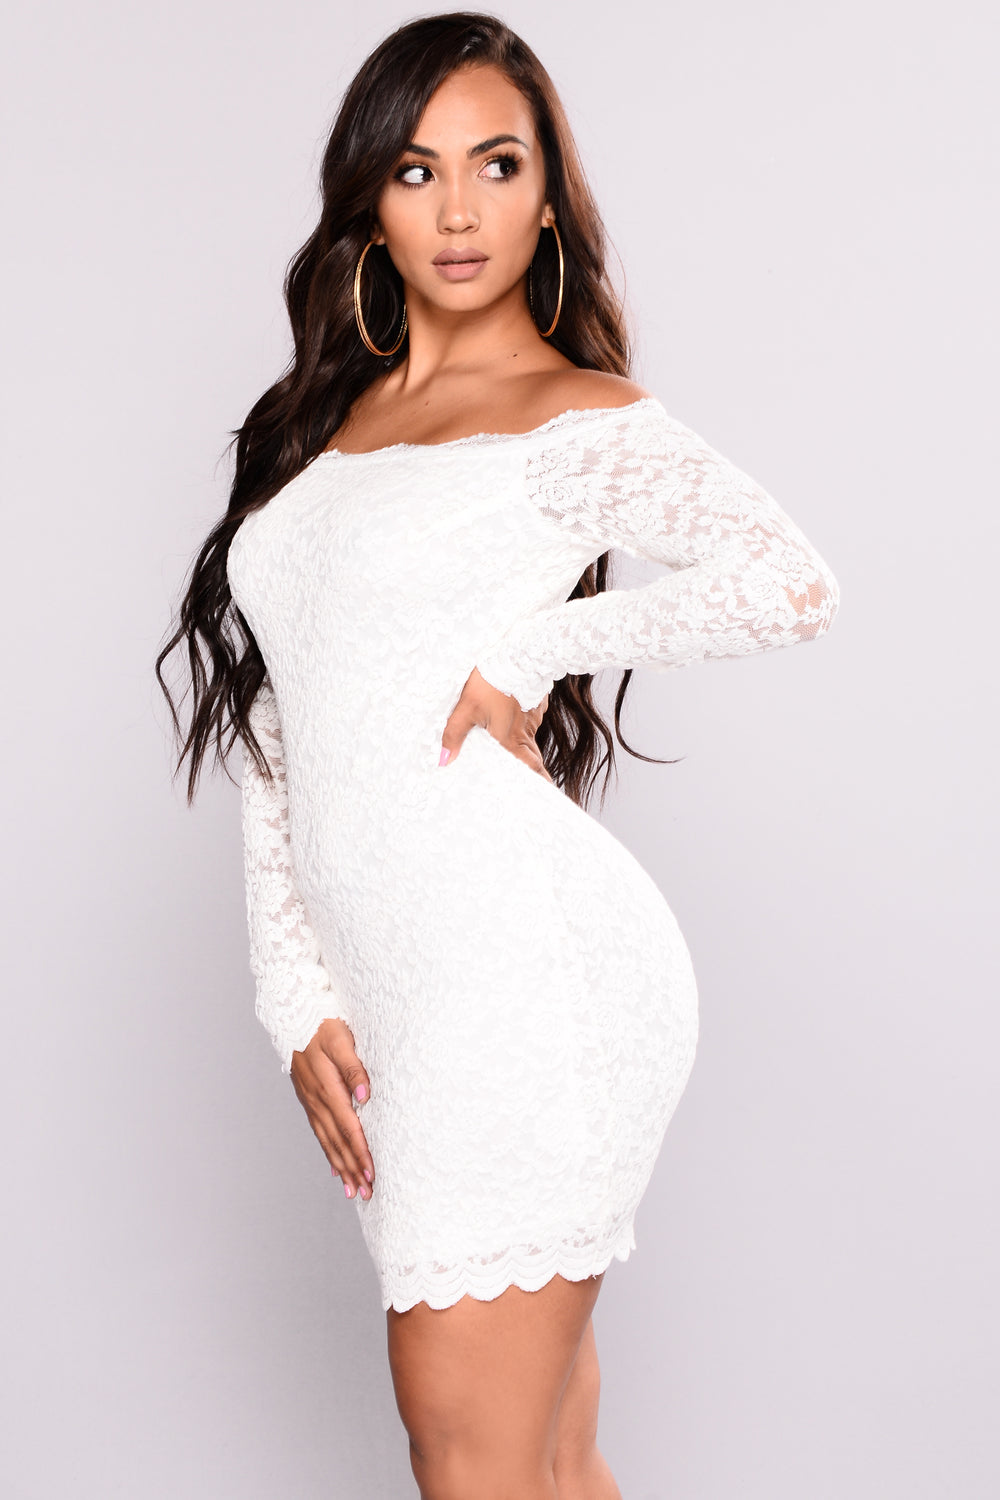 Black and white bodycon dress for sale